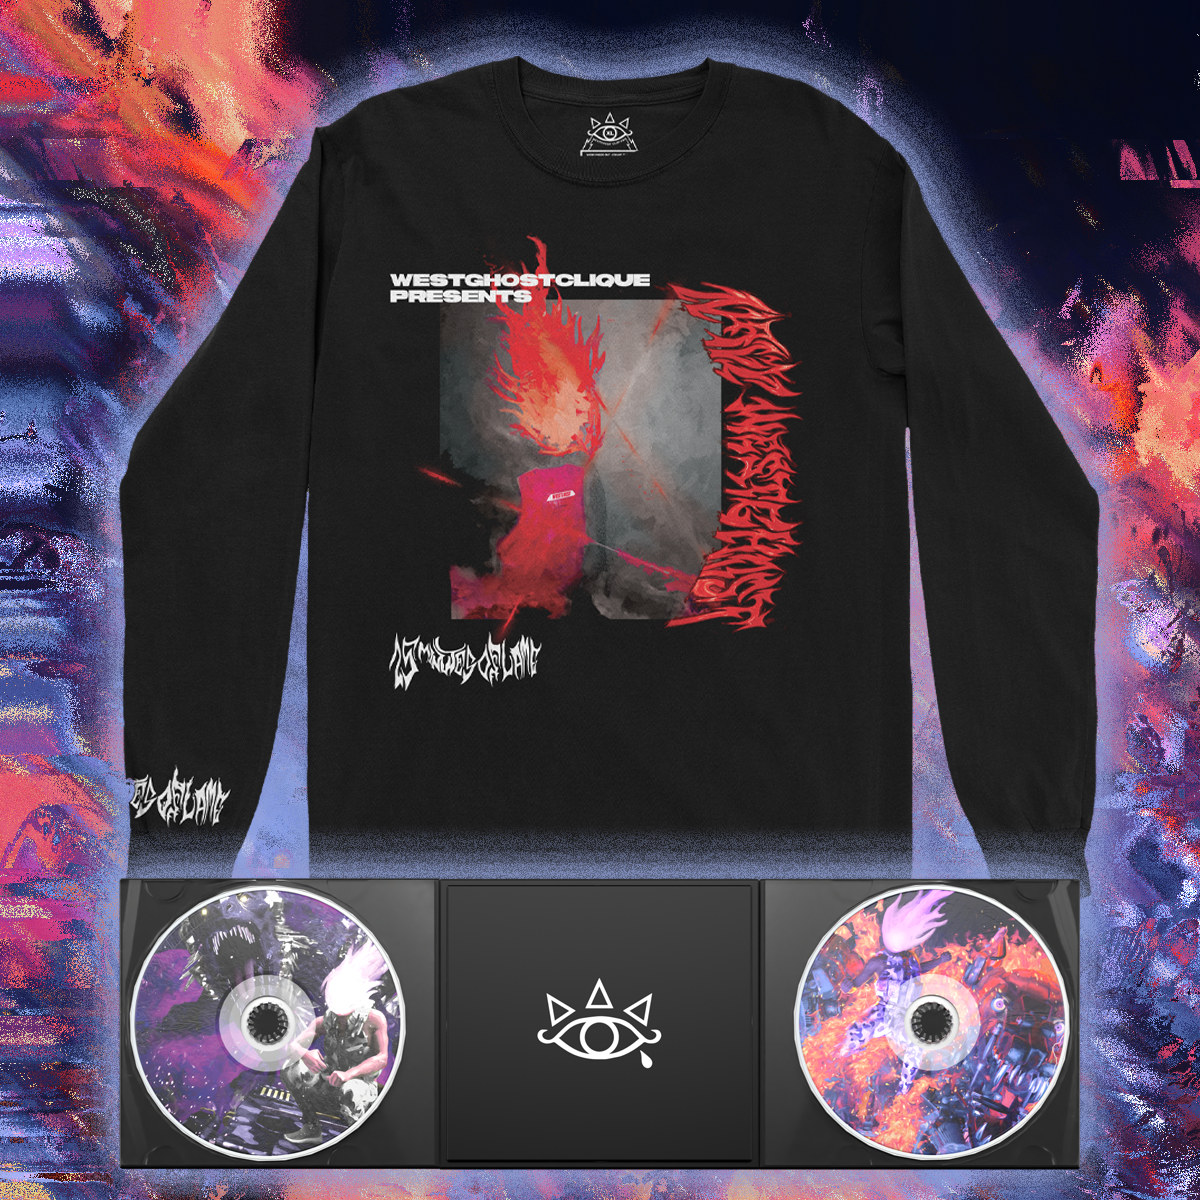 15 MINUTES OF FLAME BUNDLE [LONGSLEEVE + 2CD DIGIPAK]